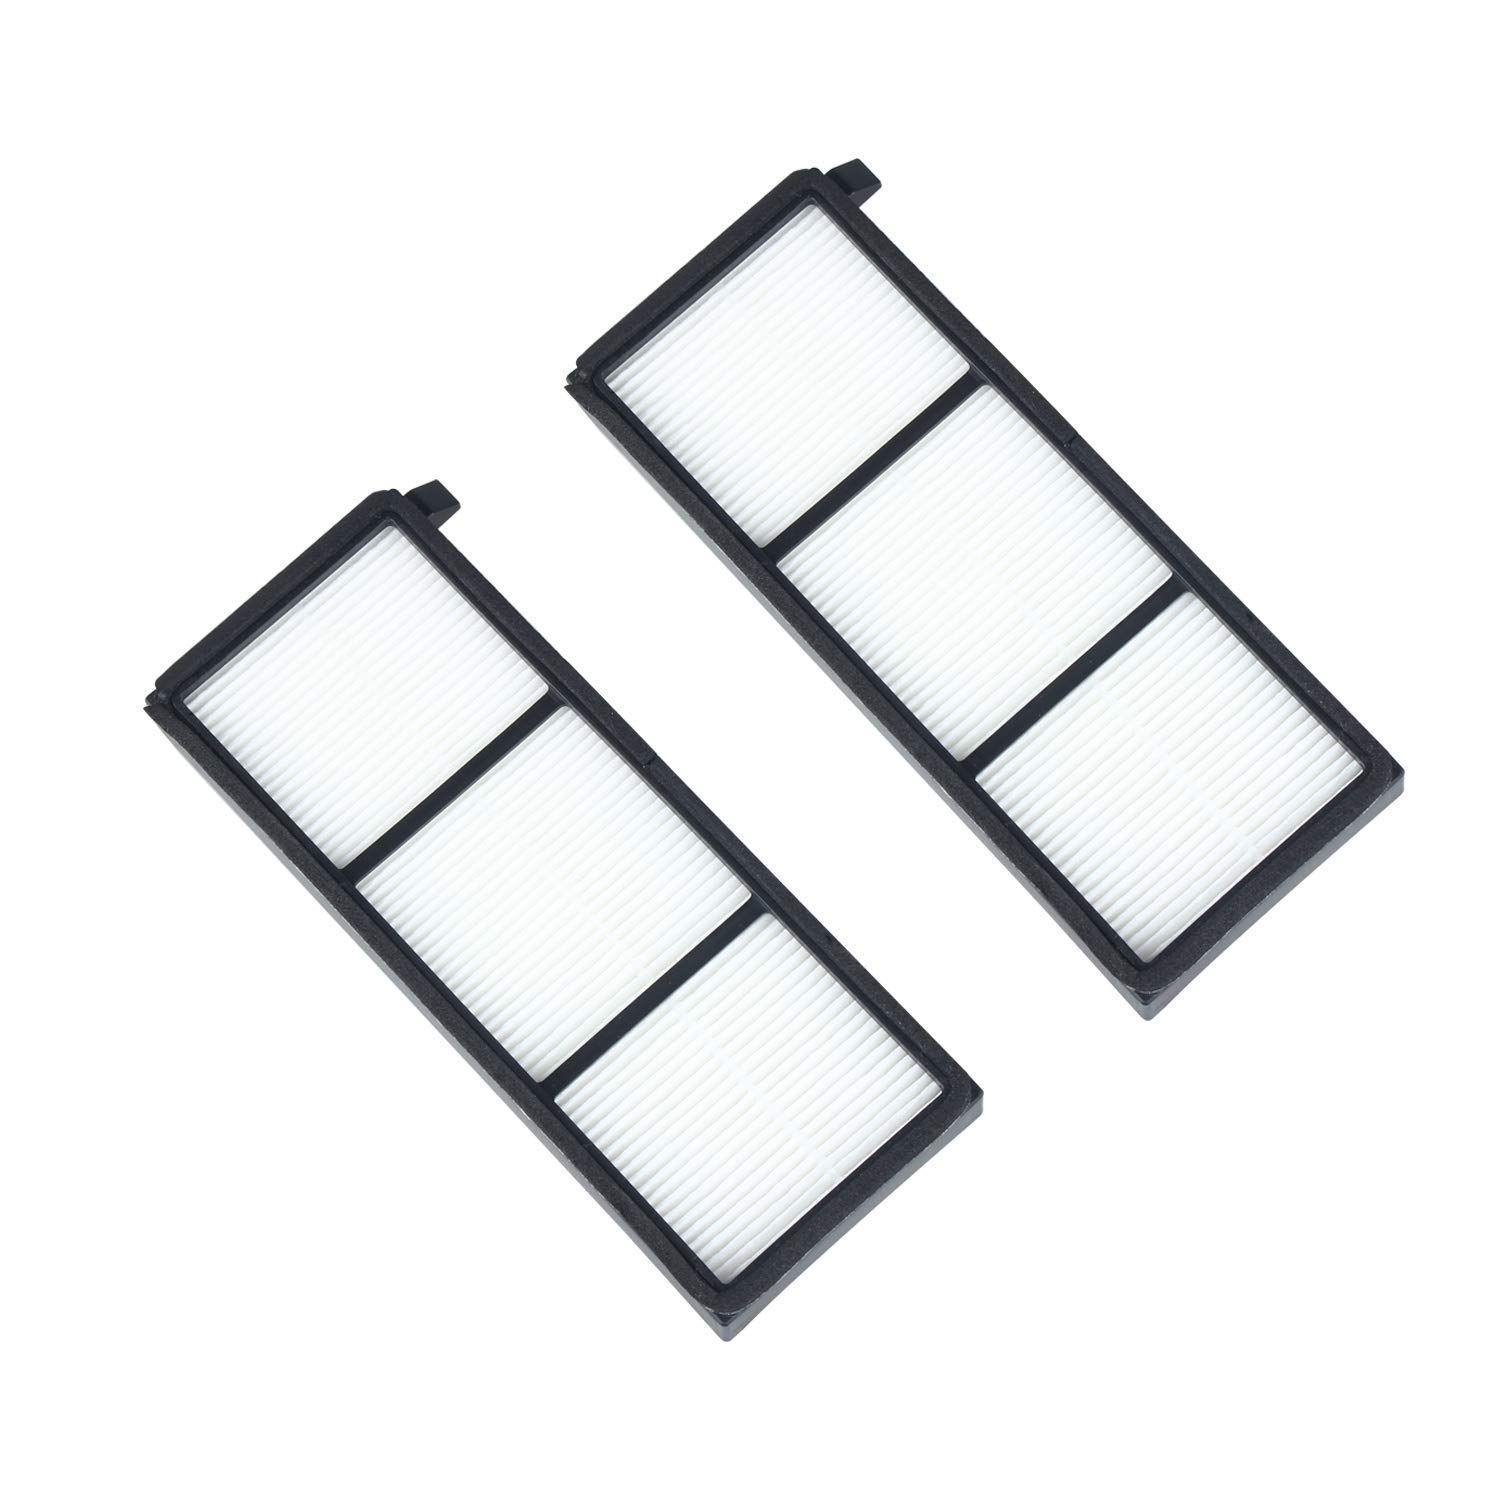 iVict 1 Pack Replacement For Shark Ion Robot Vacuum Filter Fits RV700 RV720 RV750 RV750C /& RV755 Models